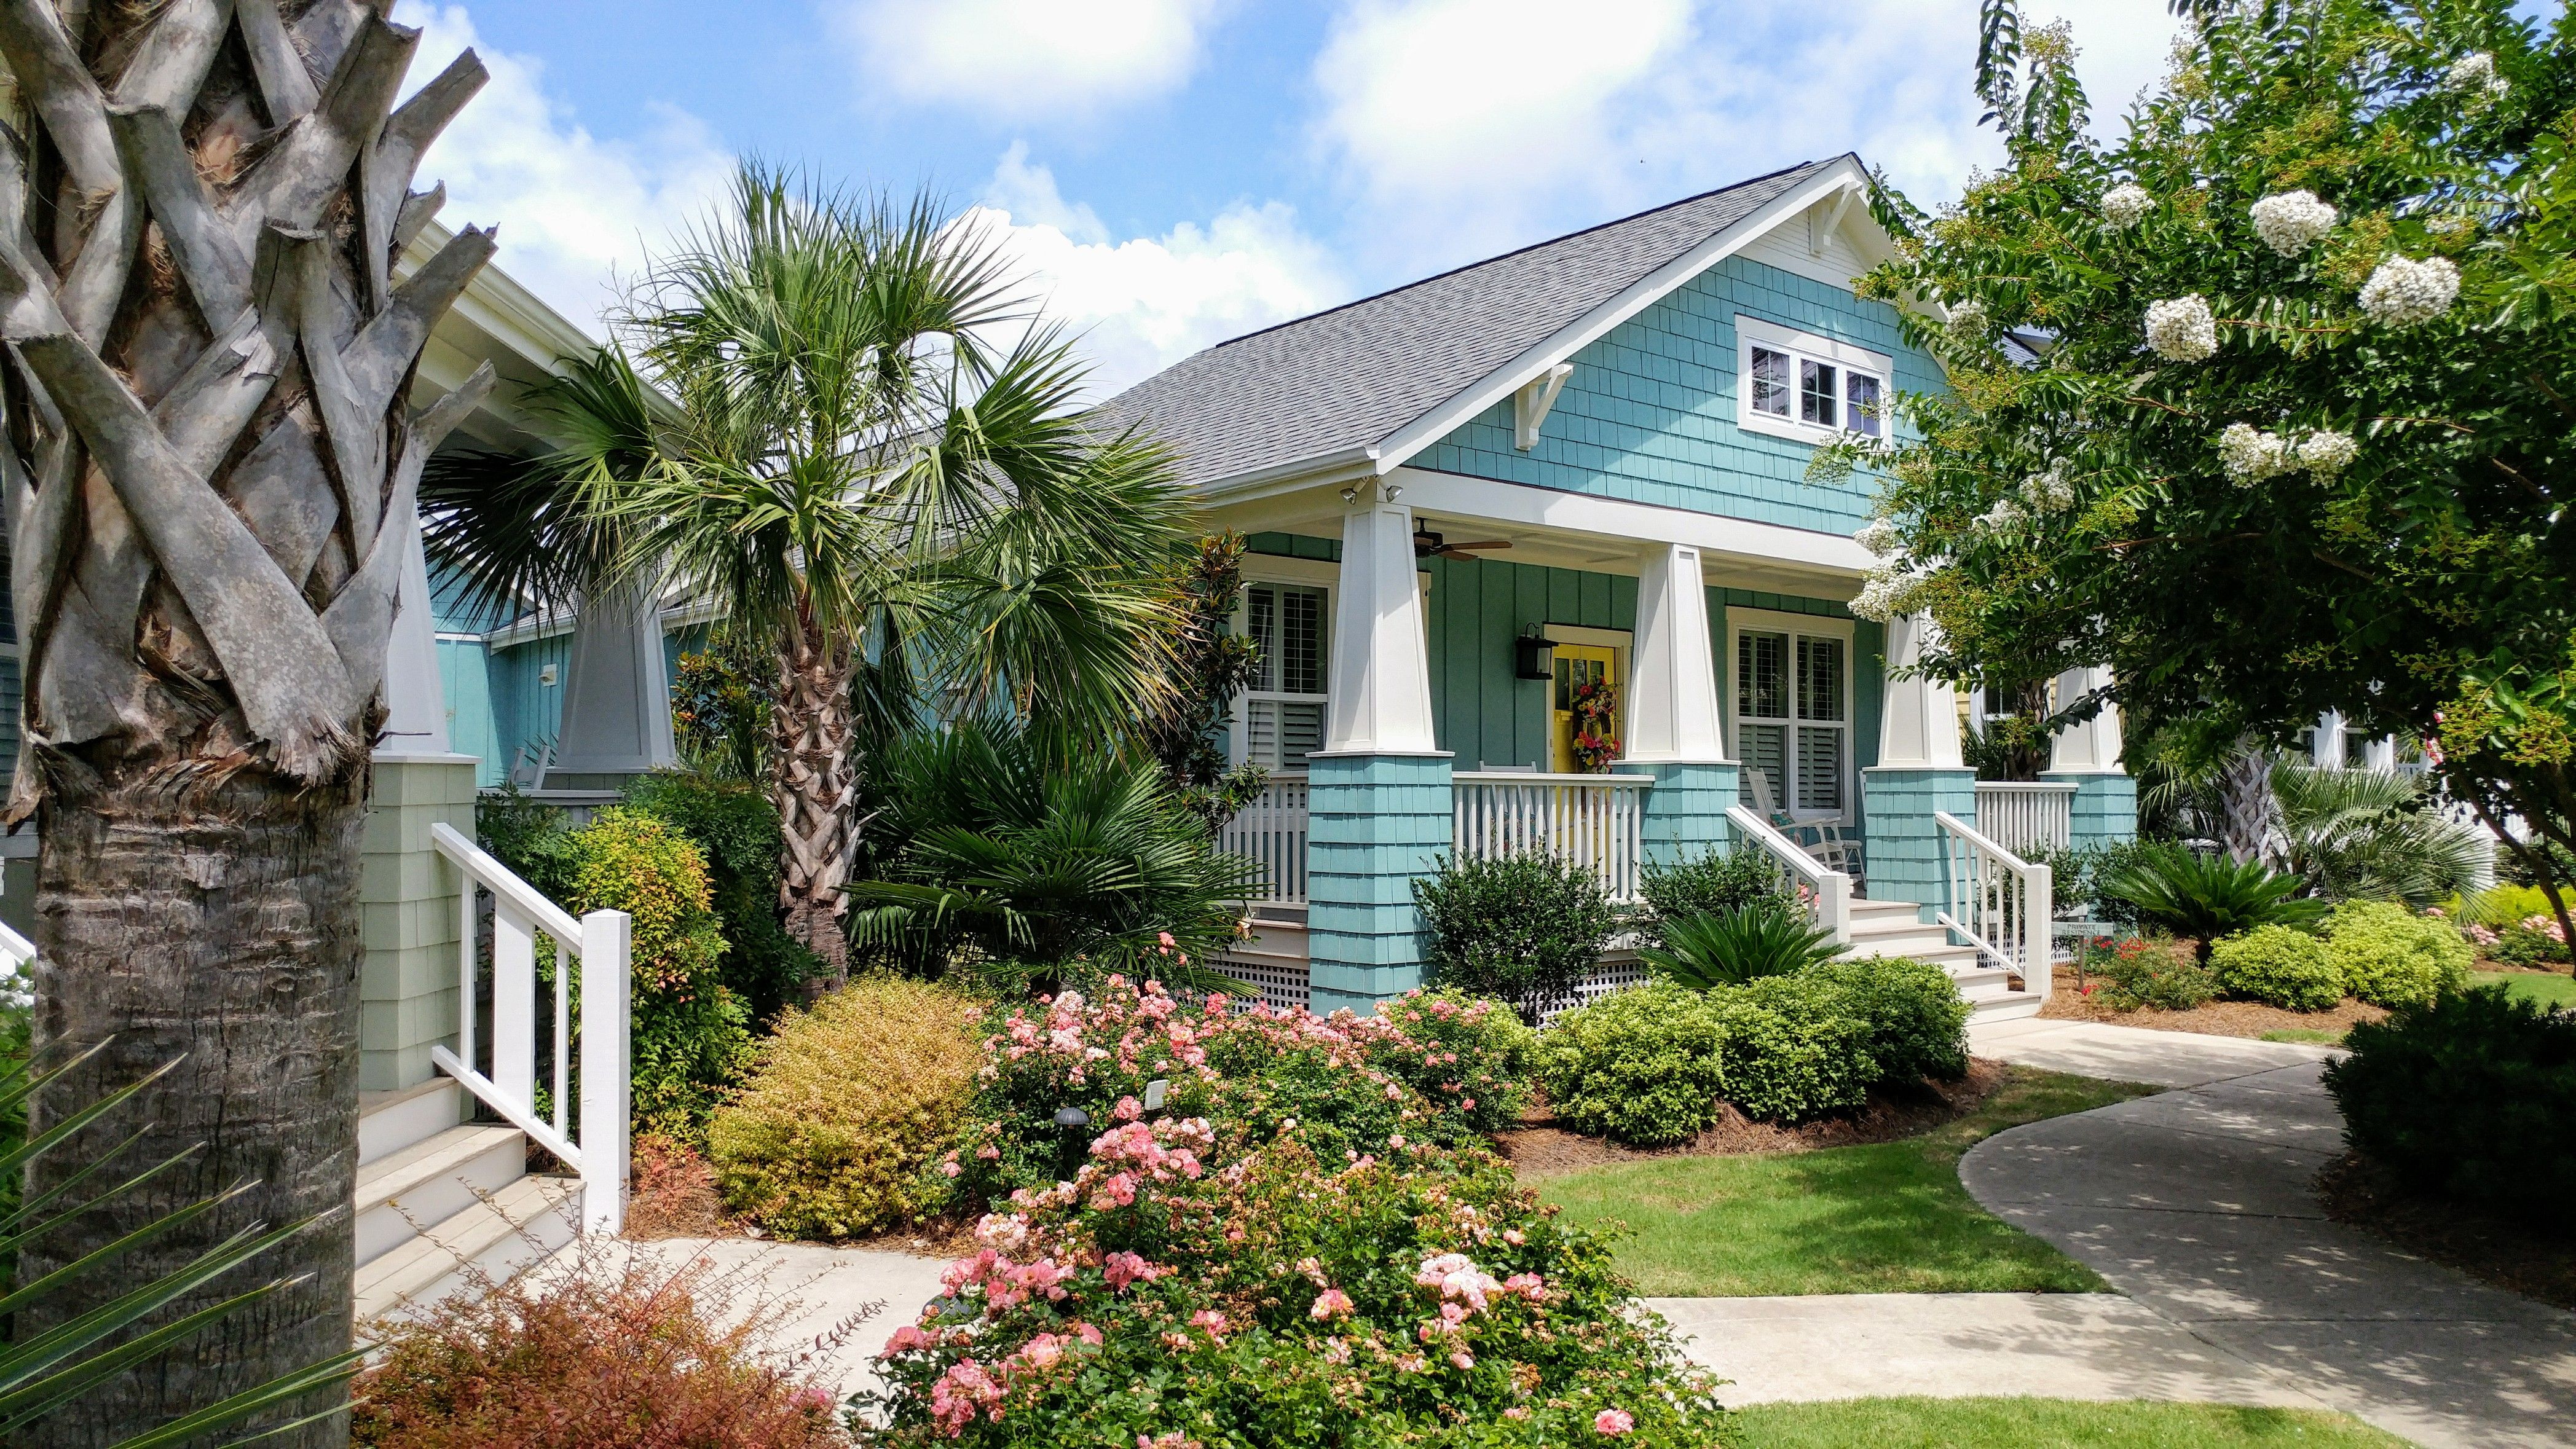 Idyllic Location Dream Cottages Low Taxes Beautiful Weather That S The Cottages At Ocean Isle Be Beach Cottage Style Beach Cottage Exterior French Cottage